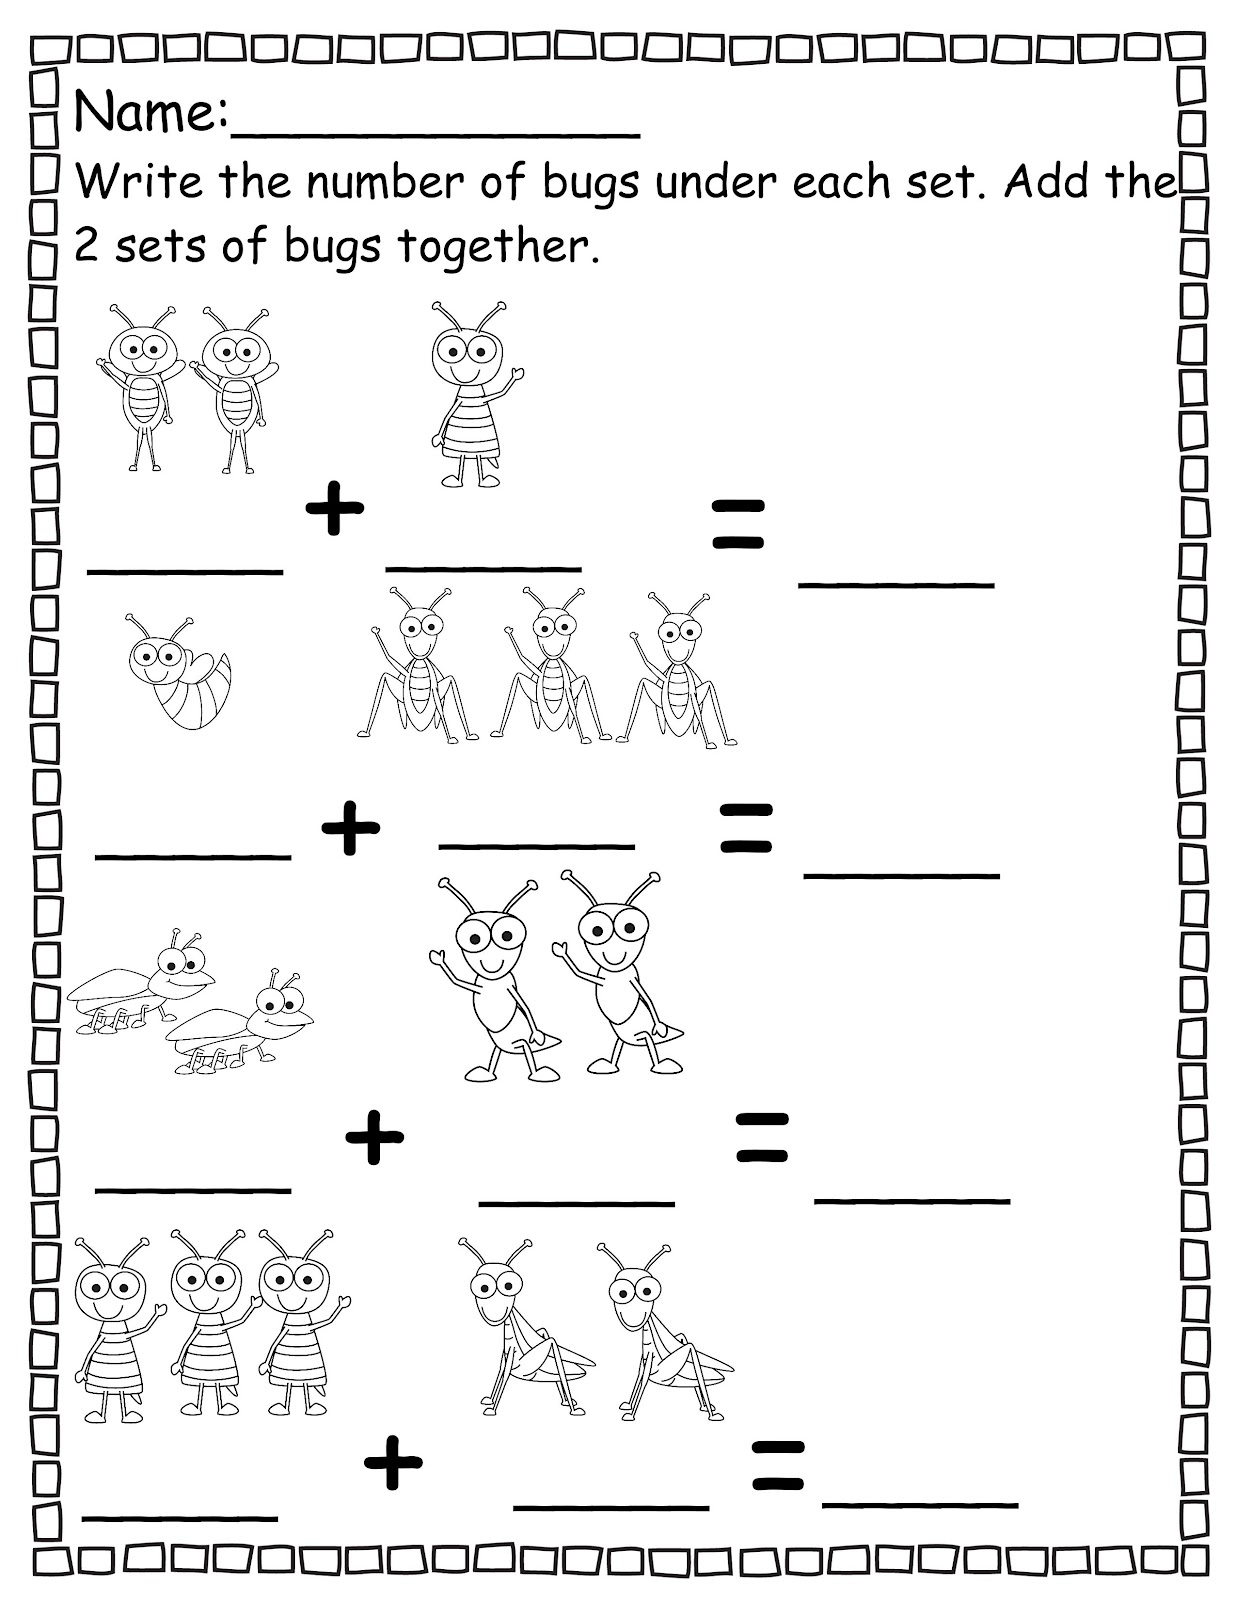 Printables Pre K Numbers Worksheets printable worksheets for pre k abitlikethis the crazy classroom free printables